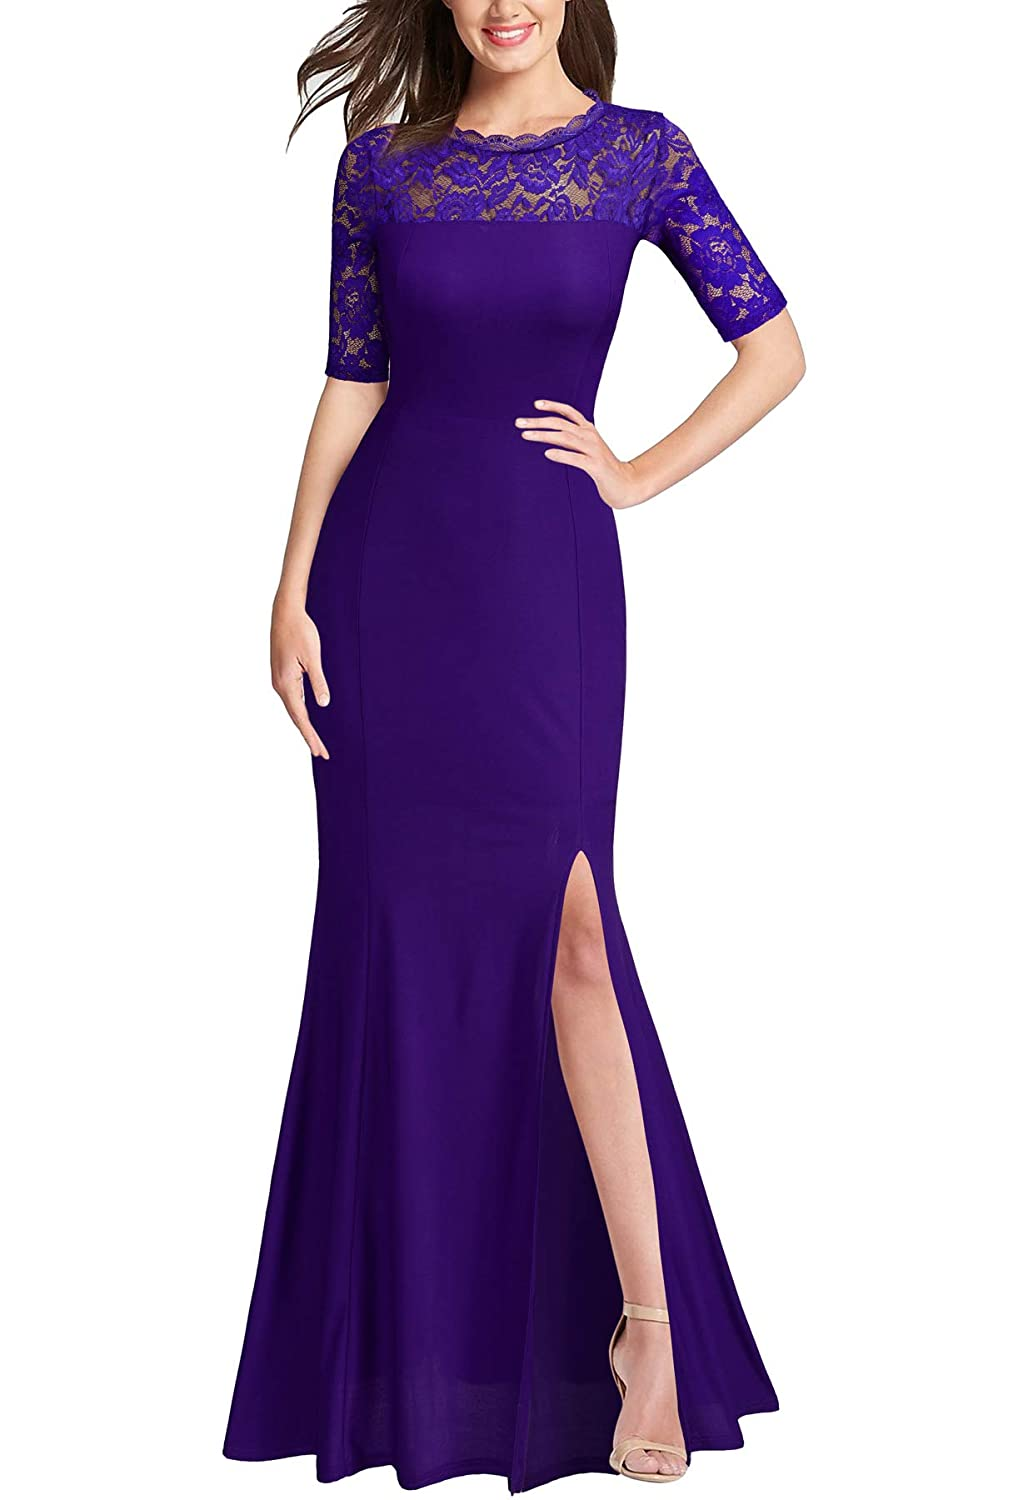 Purple FORTRIC Women 3 4 Lace Sleeve Long Evening Formal Cocktail Party Dress Black